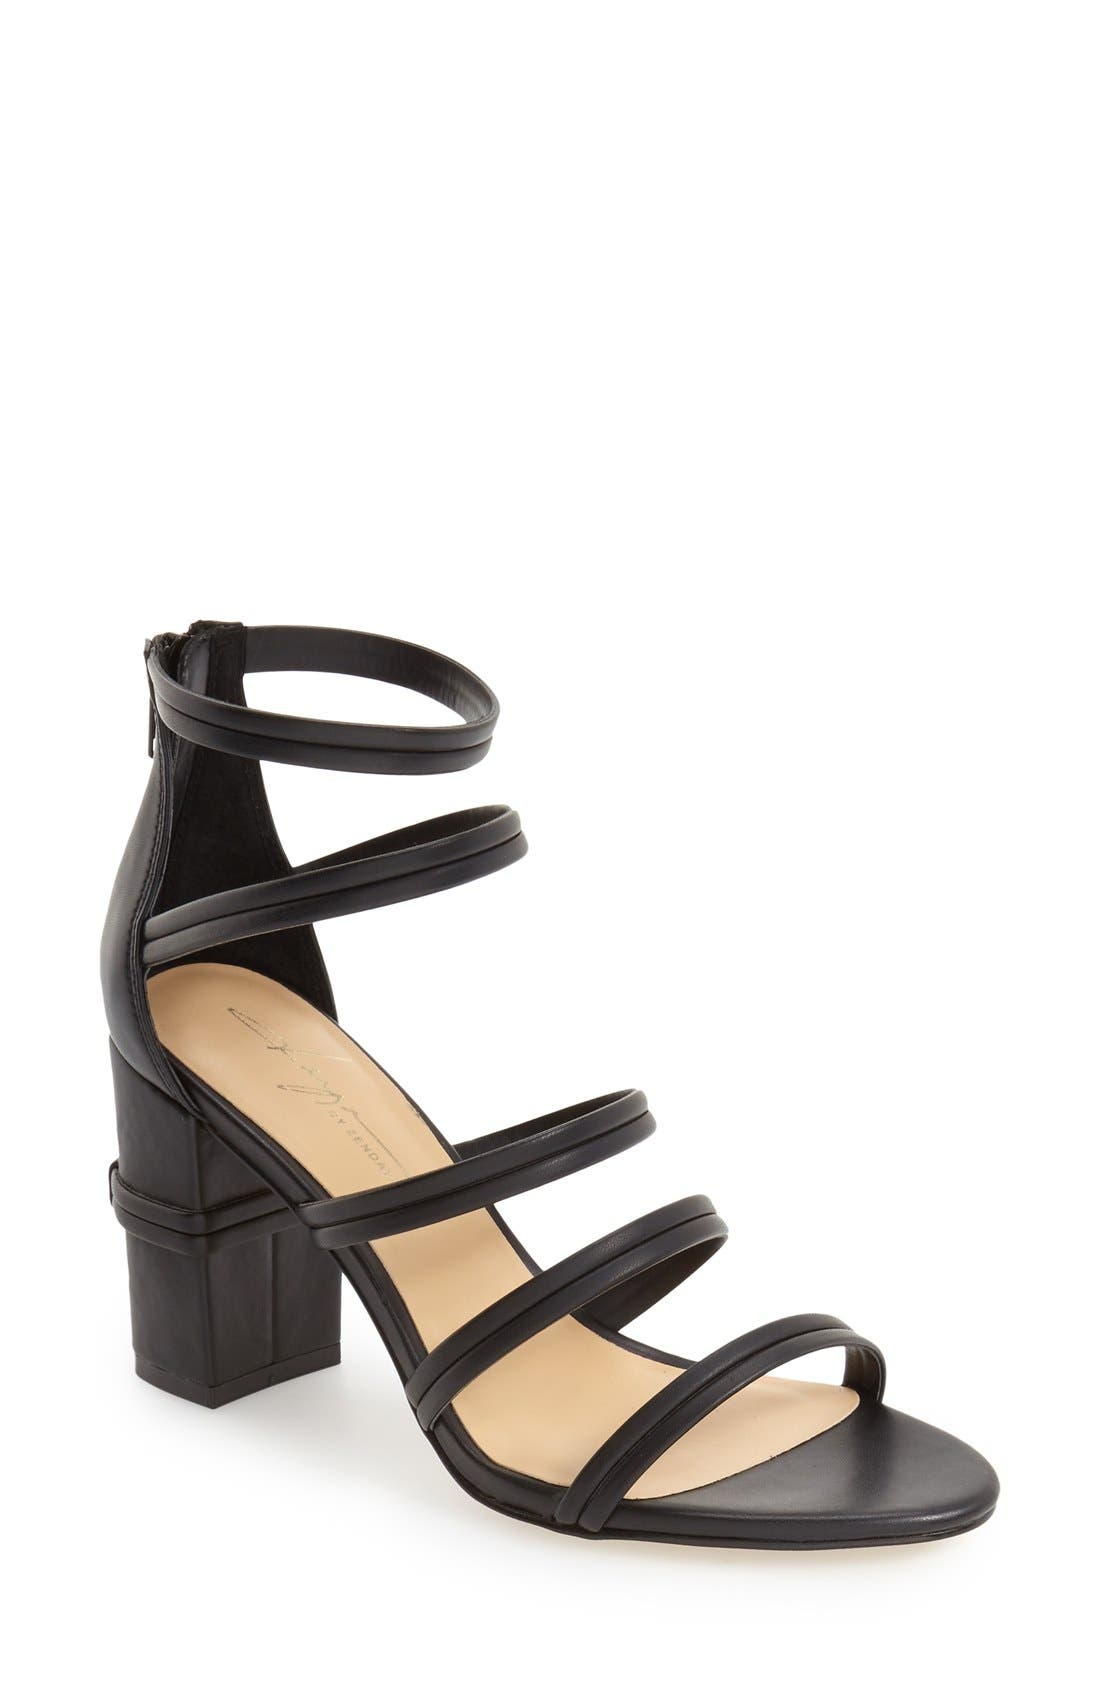 DAYA by Zendaya 'Amiee' Strappy Sandal, Main, color, 001